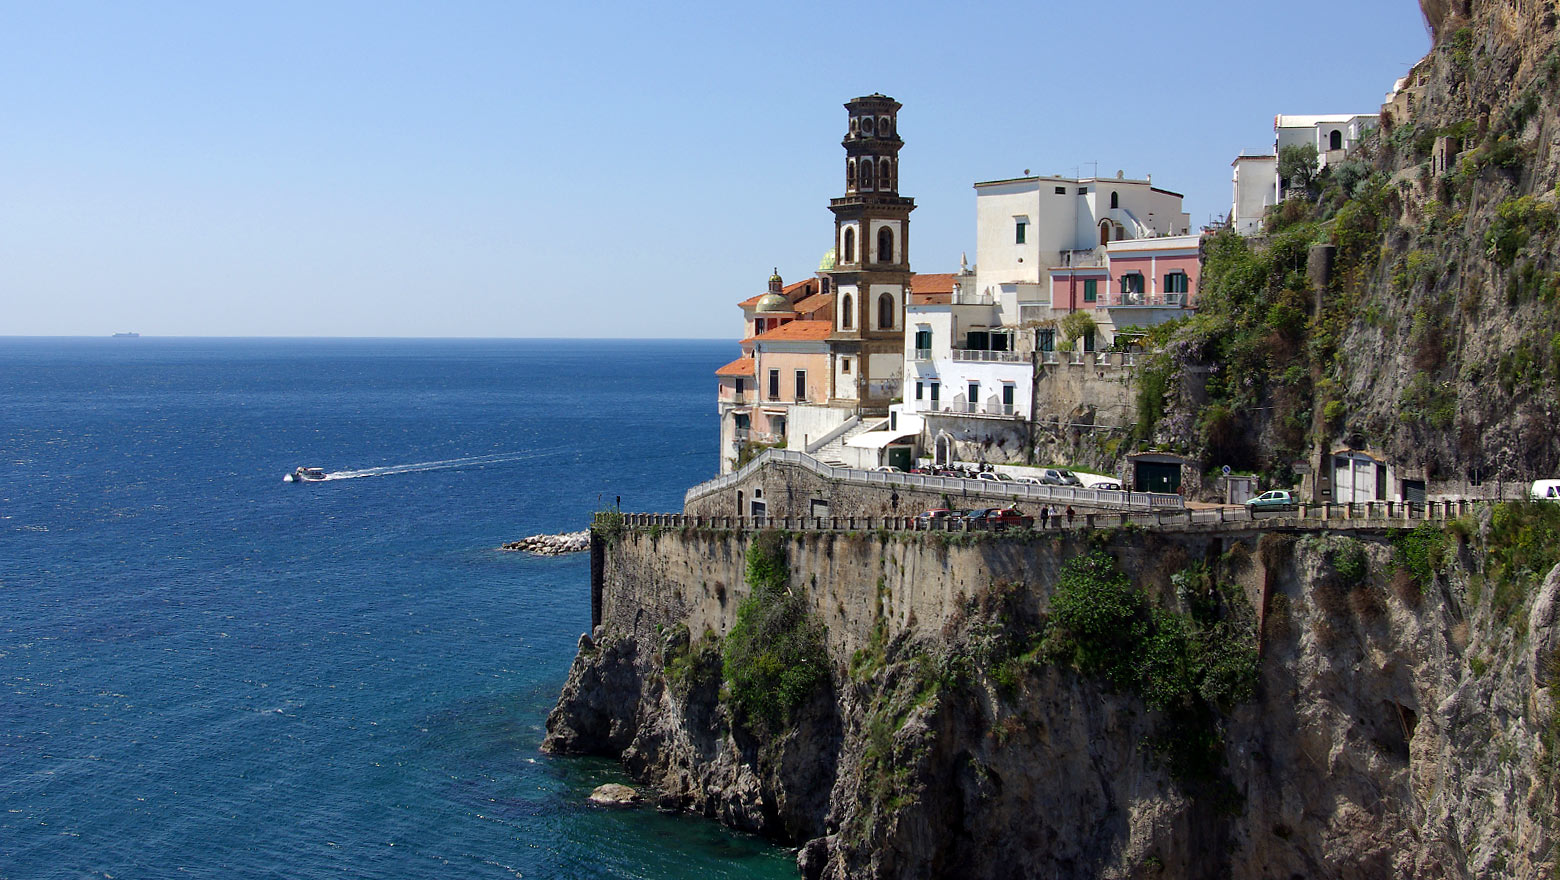 radreise amalfi k ste italien von neapel nach messina the road behind. Black Bedroom Furniture Sets. Home Design Ideas